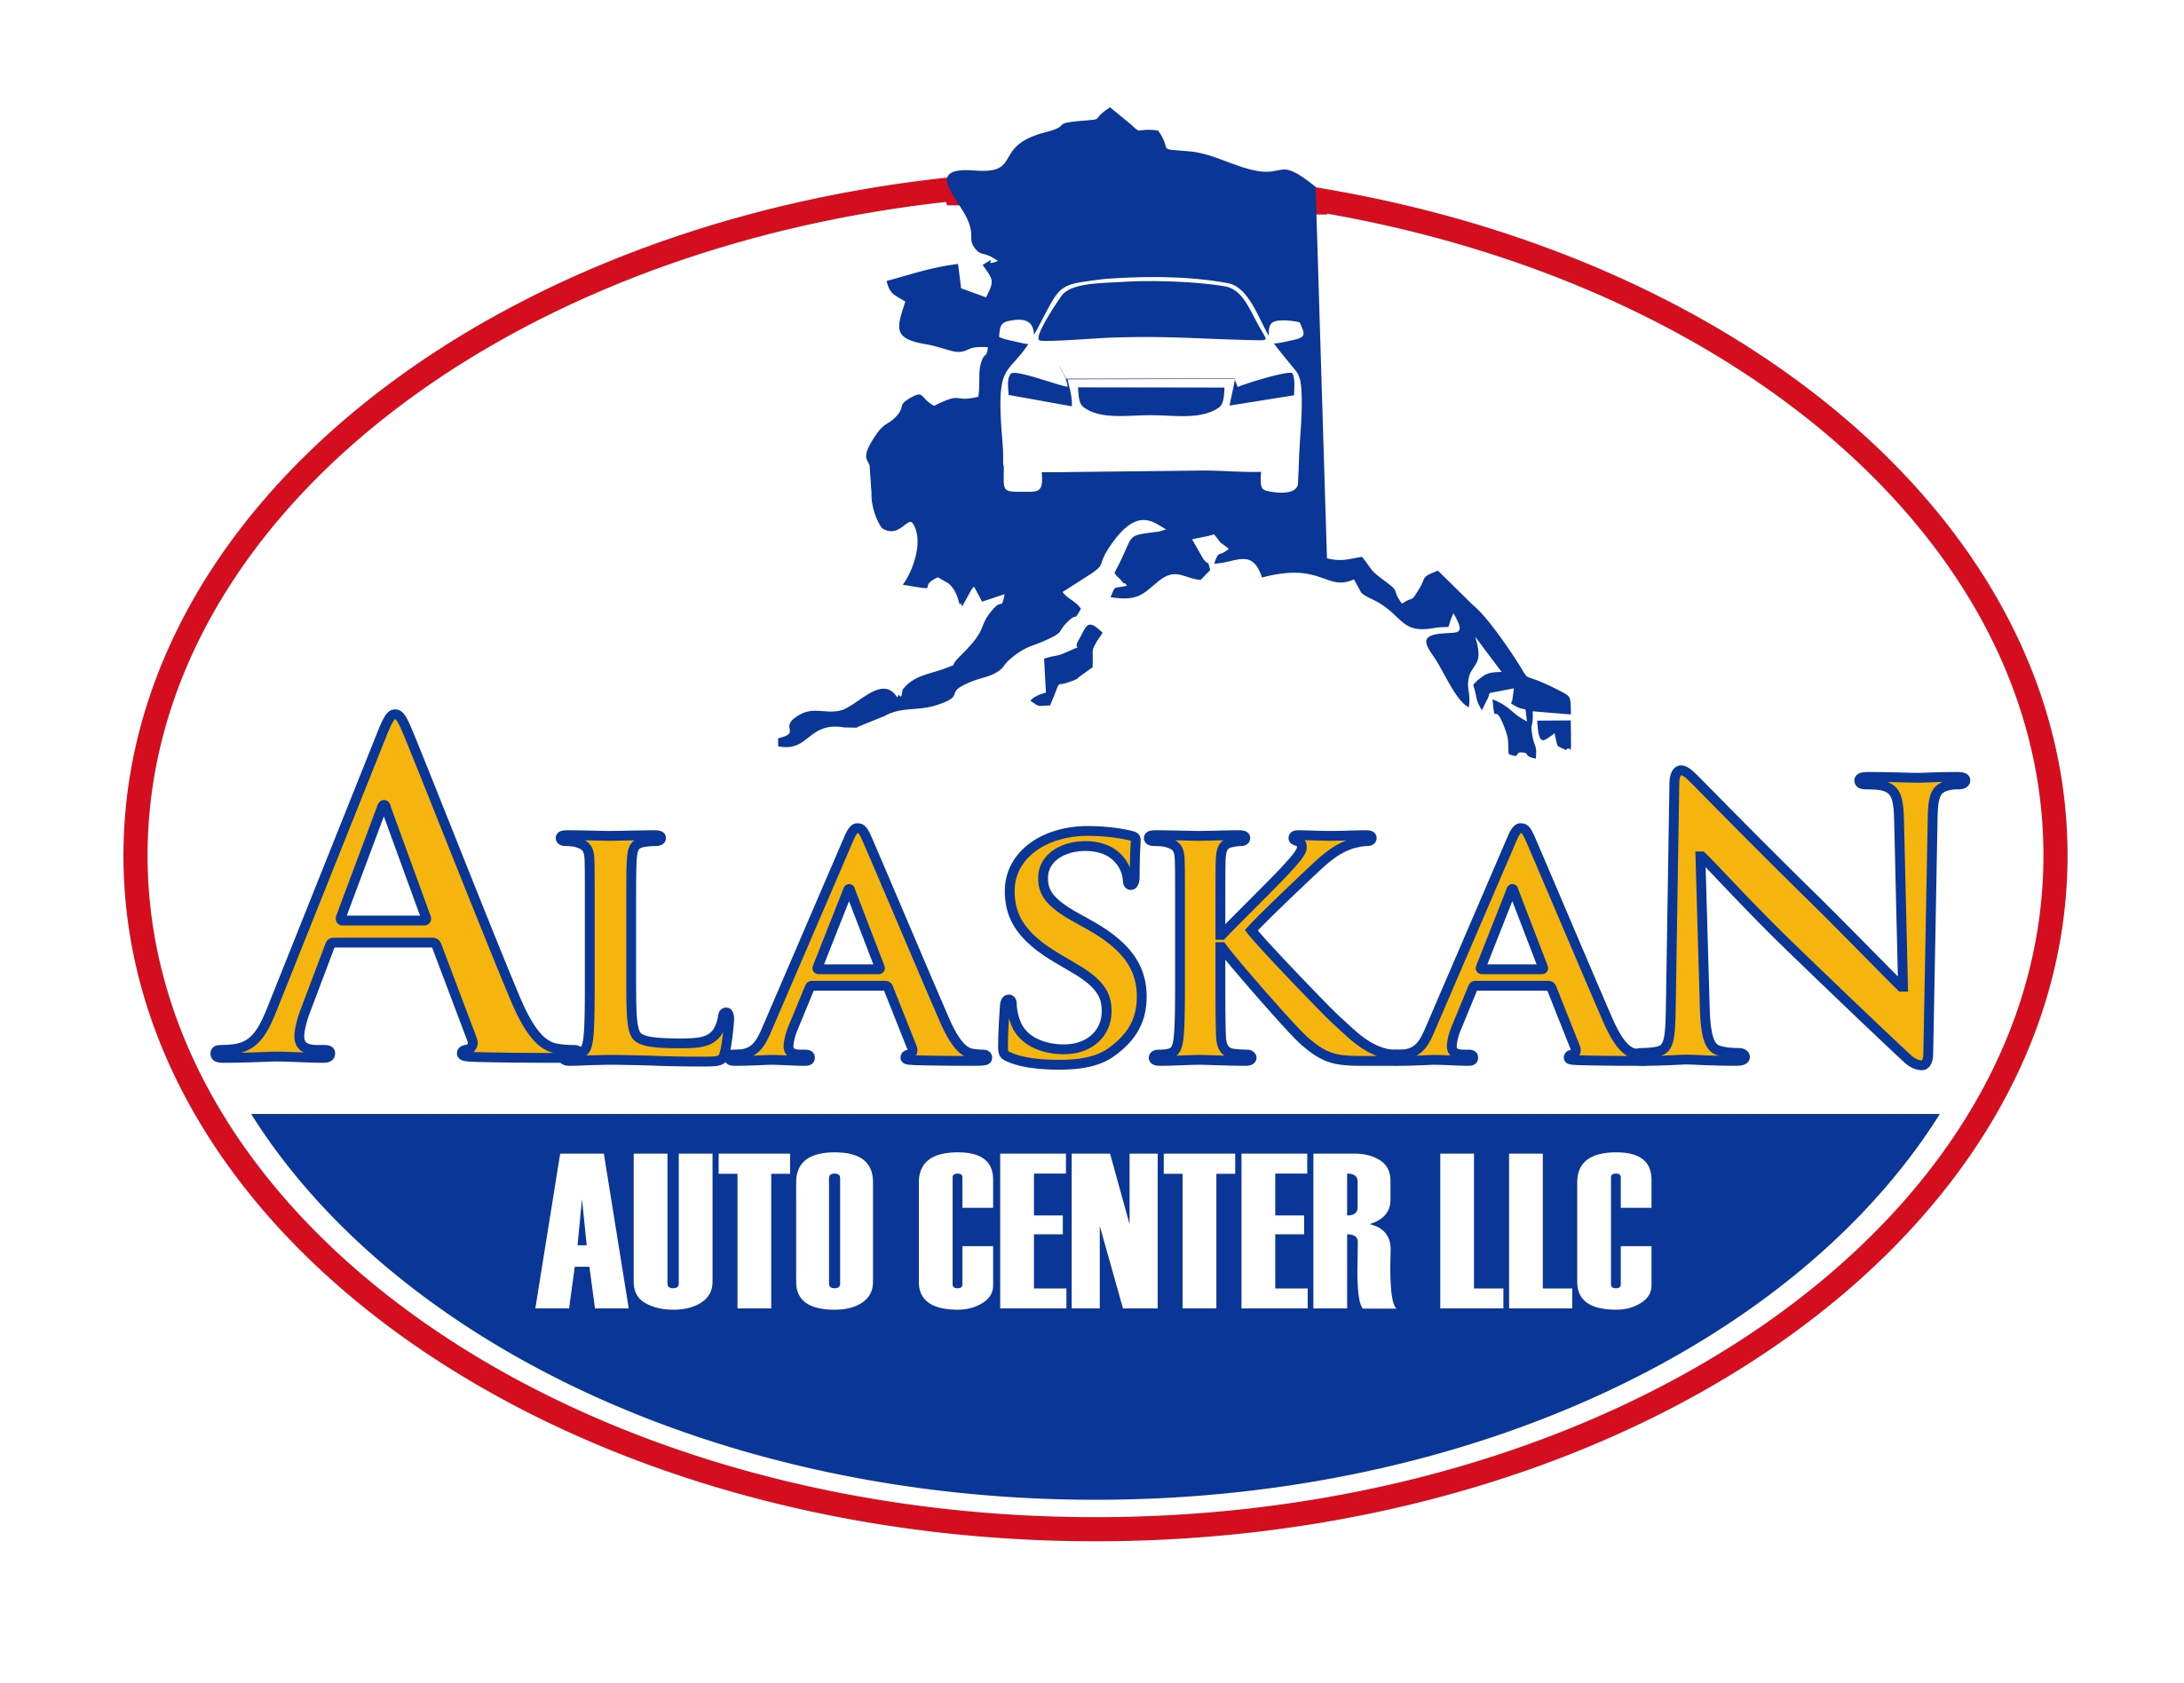 Alaskan Auto Center LLC in Anchorage